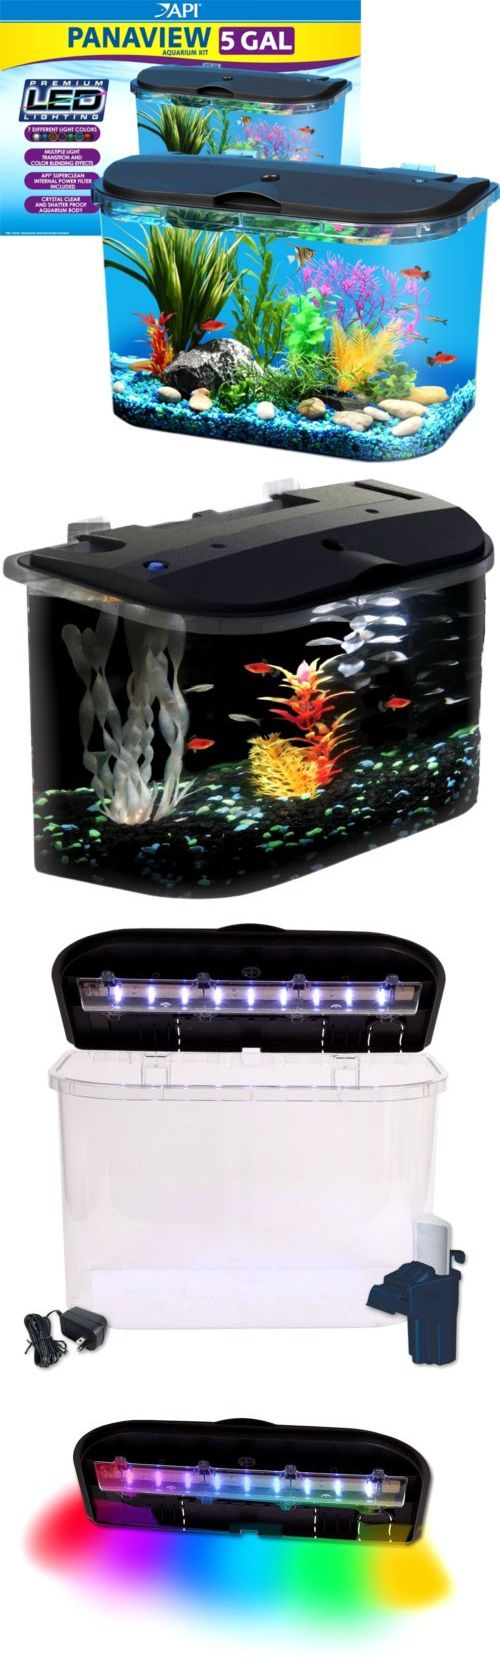 Animals Fish And Aquariums: Starter Aquarium Kit Fish Water Tank With Led Lighting And Power Filter 5 Gallon BUY IT NOW ONLY: $47.09